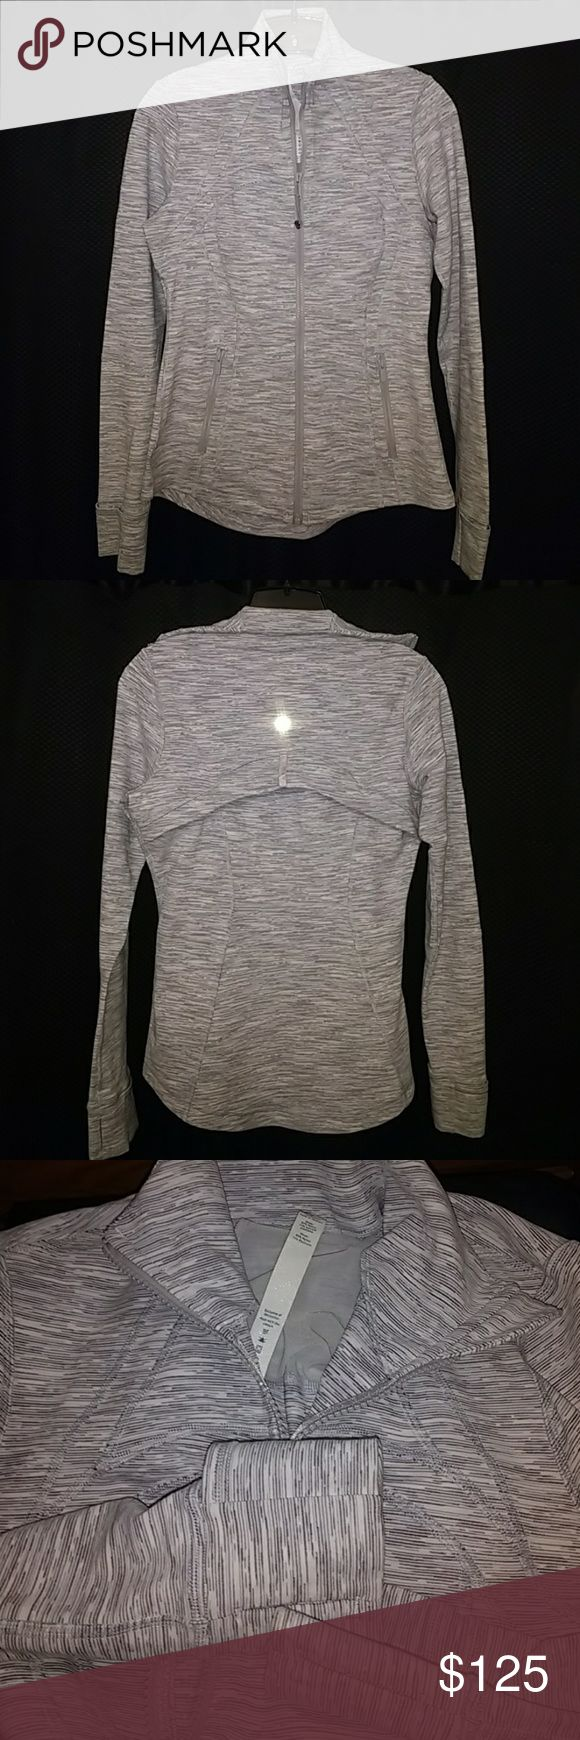 Lululemon Wee Are From Space Define Jacket This is super cool! It's great for layering and lightweight. Pretty much like new, just not my color!   • Lululemon Wee Are From Space Define Jacket - Silver Spoon lululemon athletica Jackets & Coats